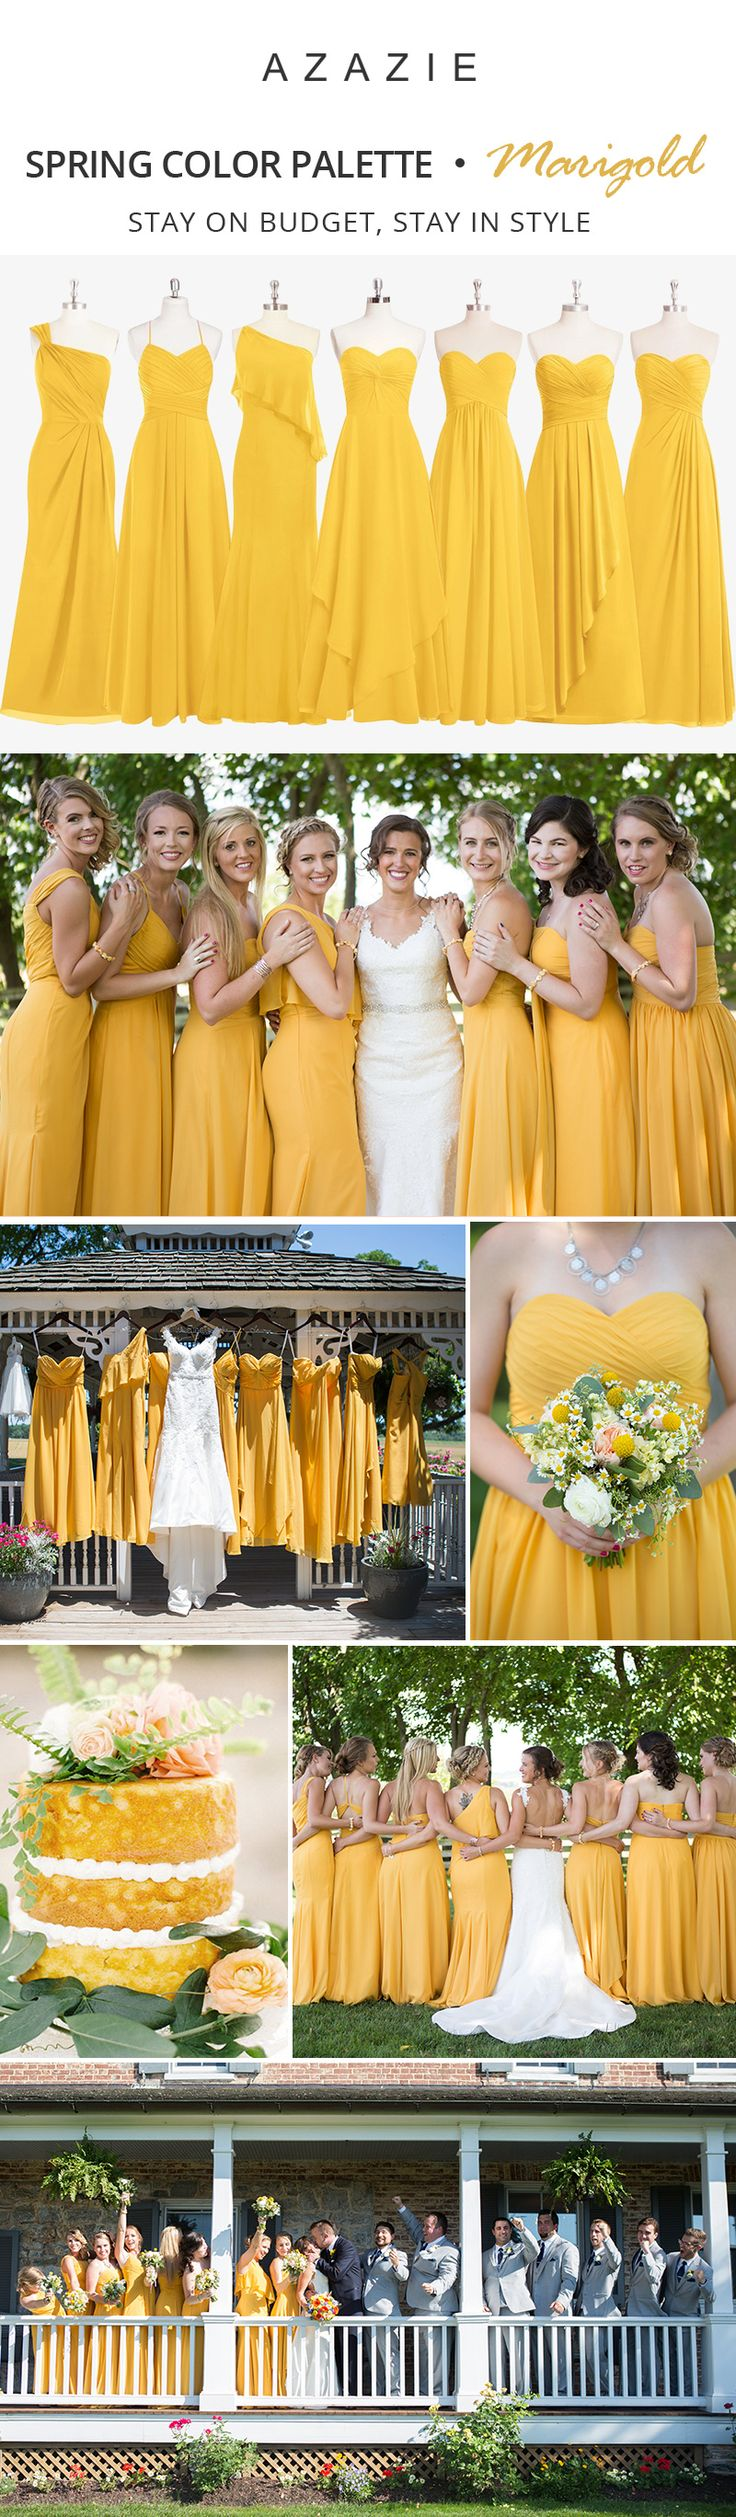 Dress your bridesmaids in this beautiful golden yellow! Available in sizes 0-30 and free custom sizing!